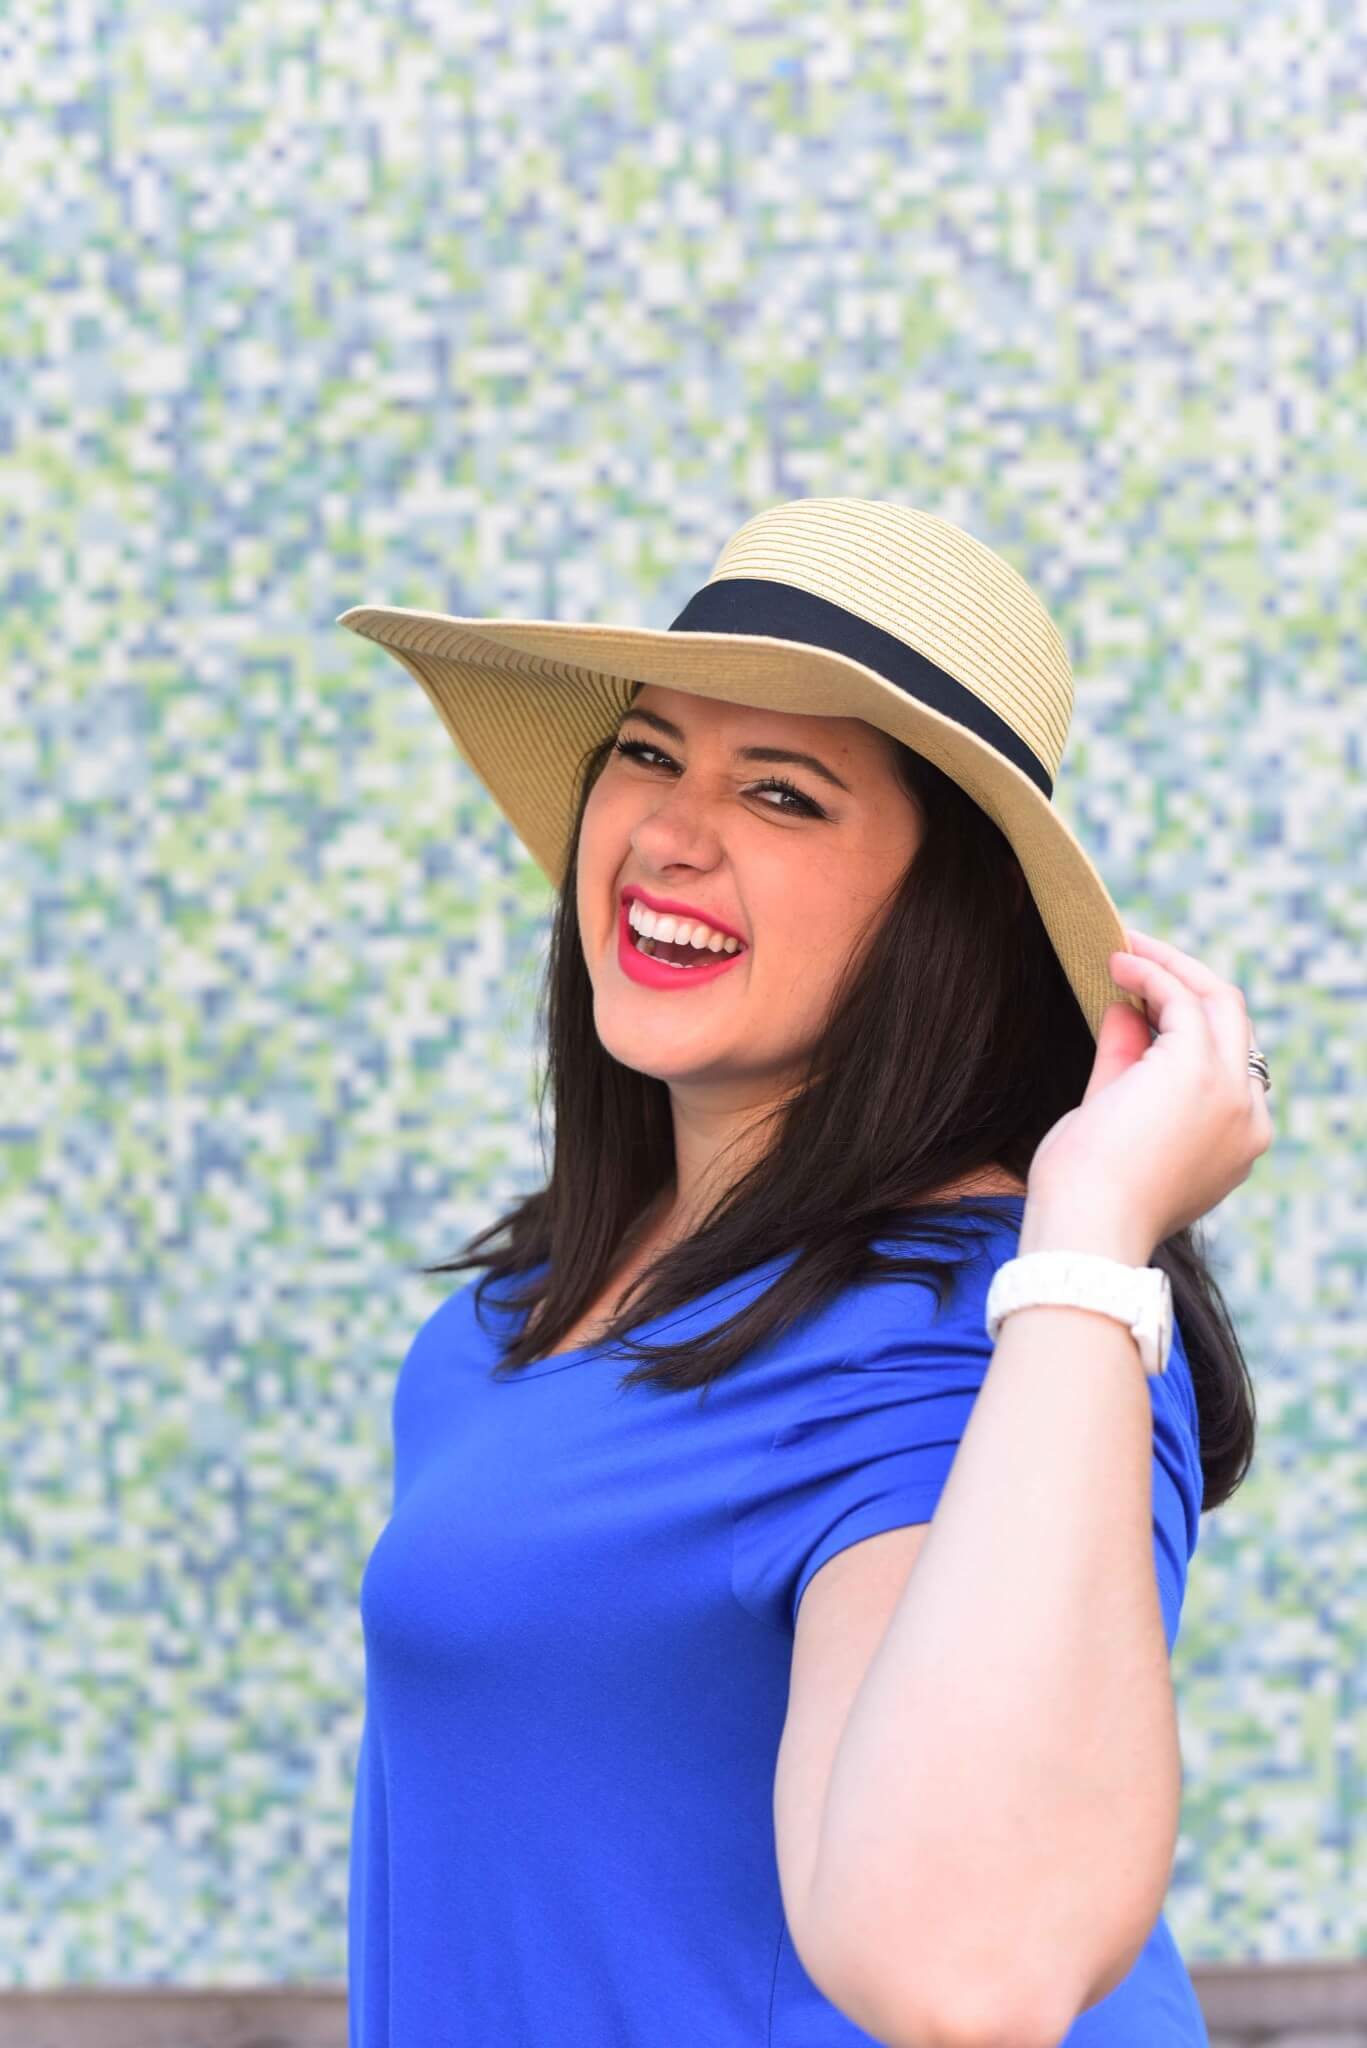 What to wear on a summer weekend day for being a tourist in your own city. A chic summer dress, an adorable printed pair of sneakers and a hat create an eyecatching look. #plussize #plussizeblogger #summerstyle #summerdress